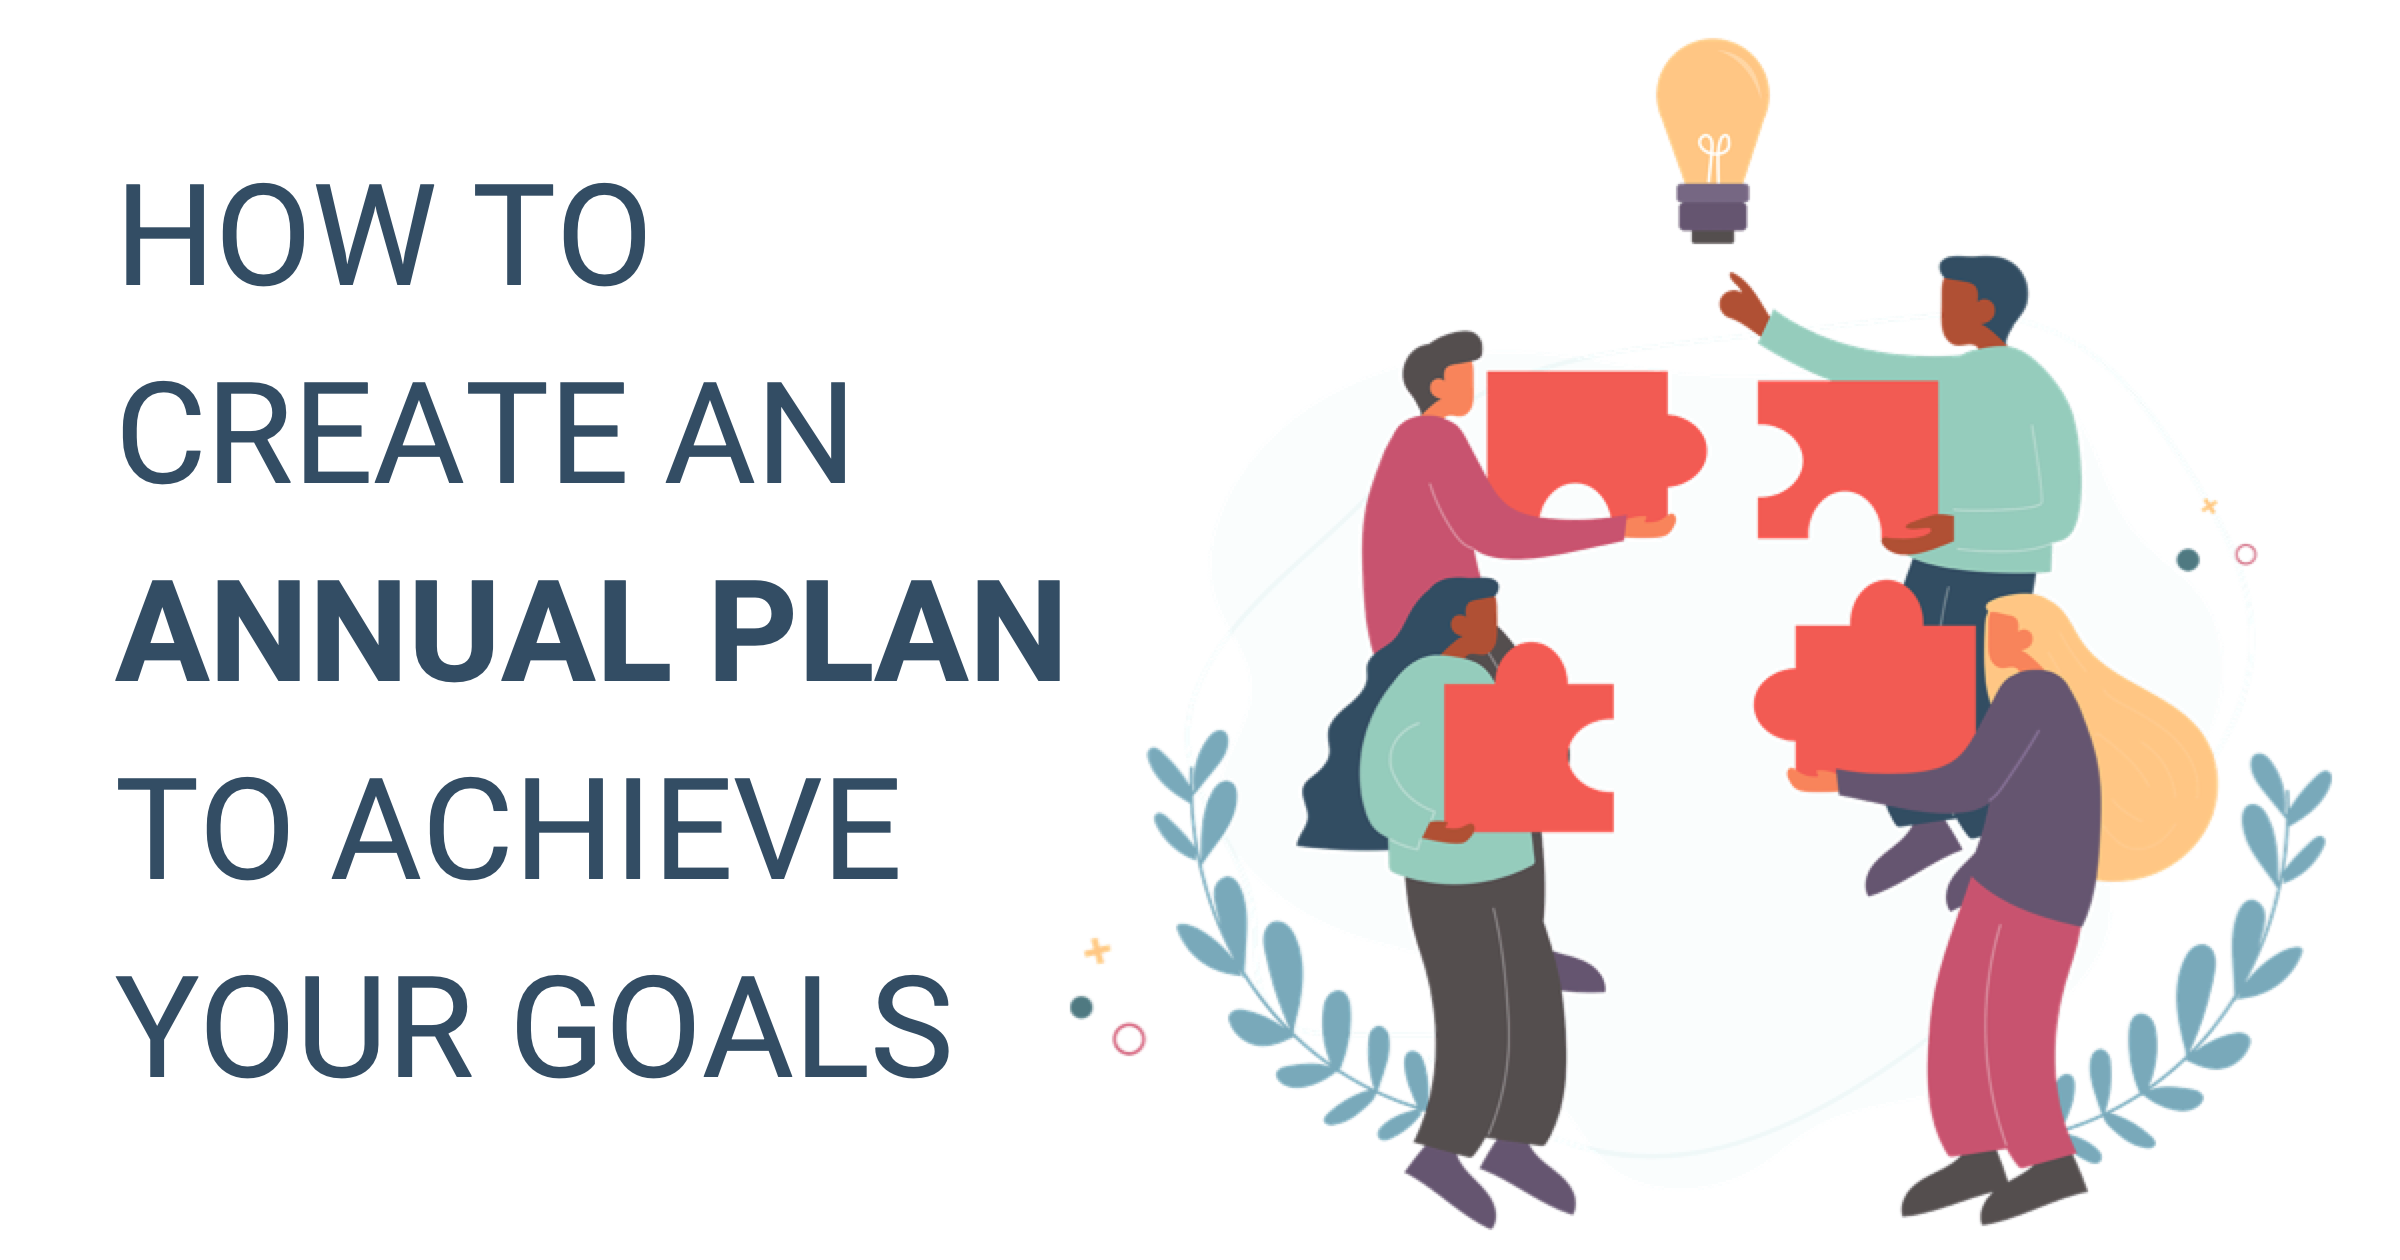 How to create an annual plan to achieve your goals